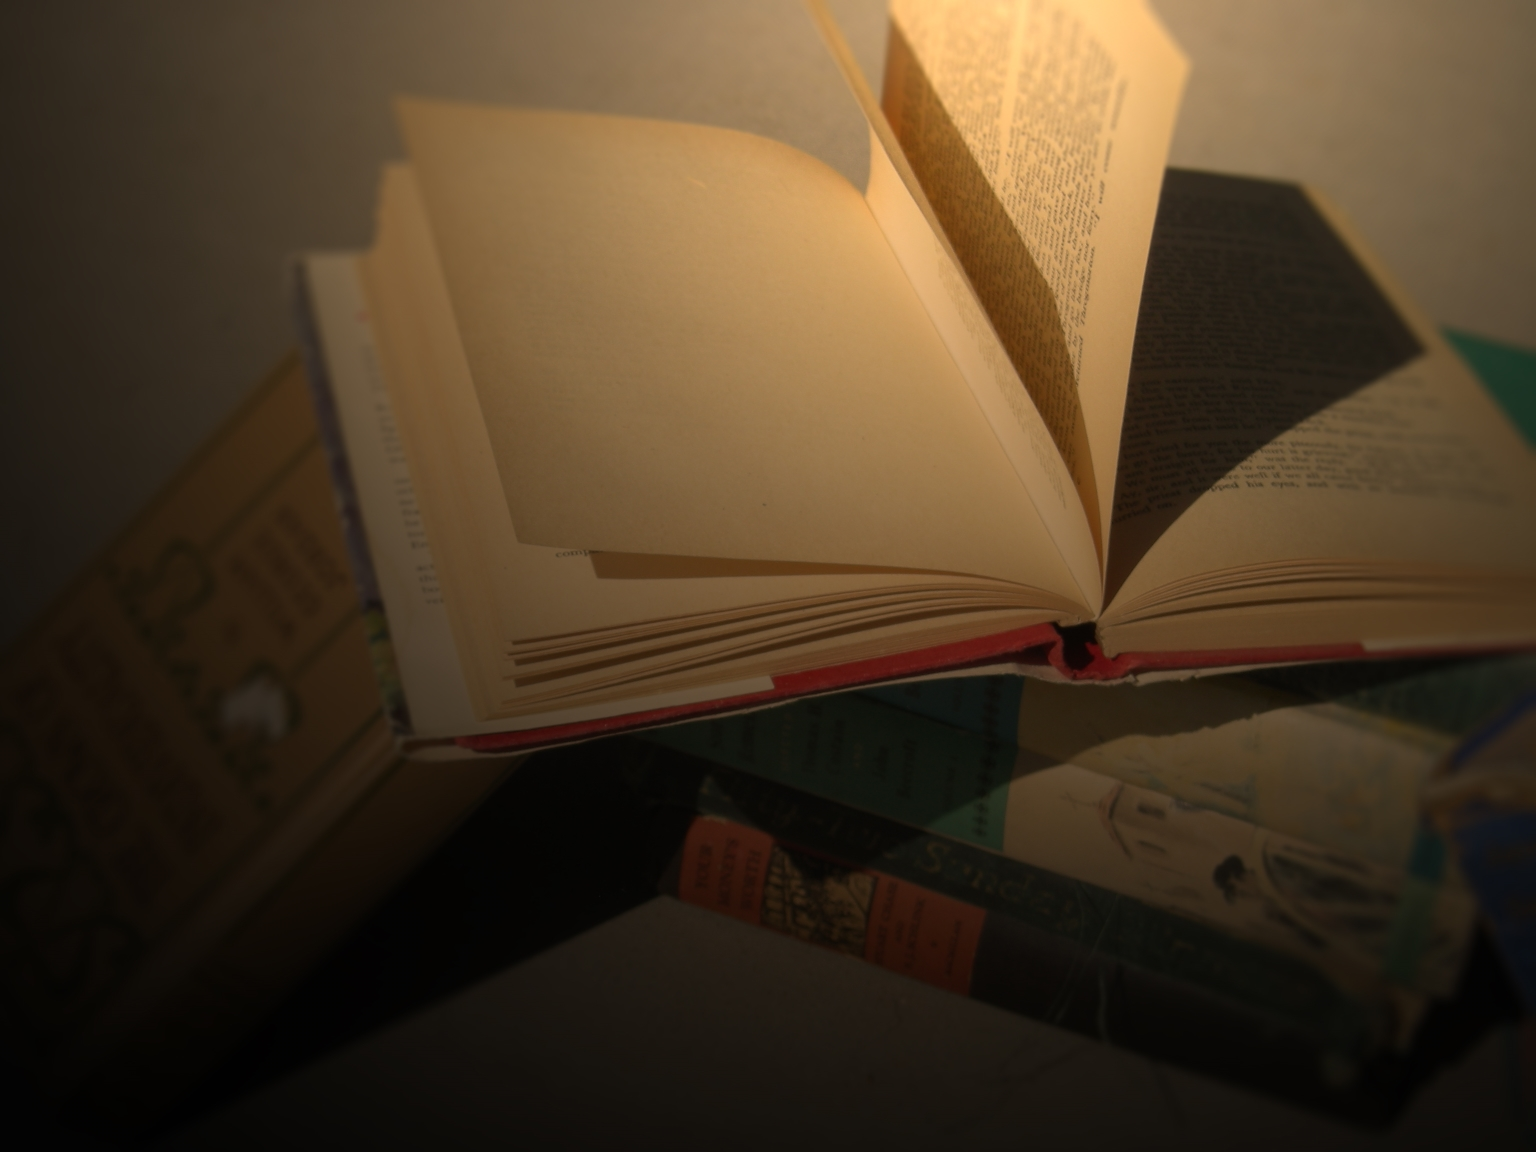 Books, Blank, Book, Open, Shadow, HQ Photo